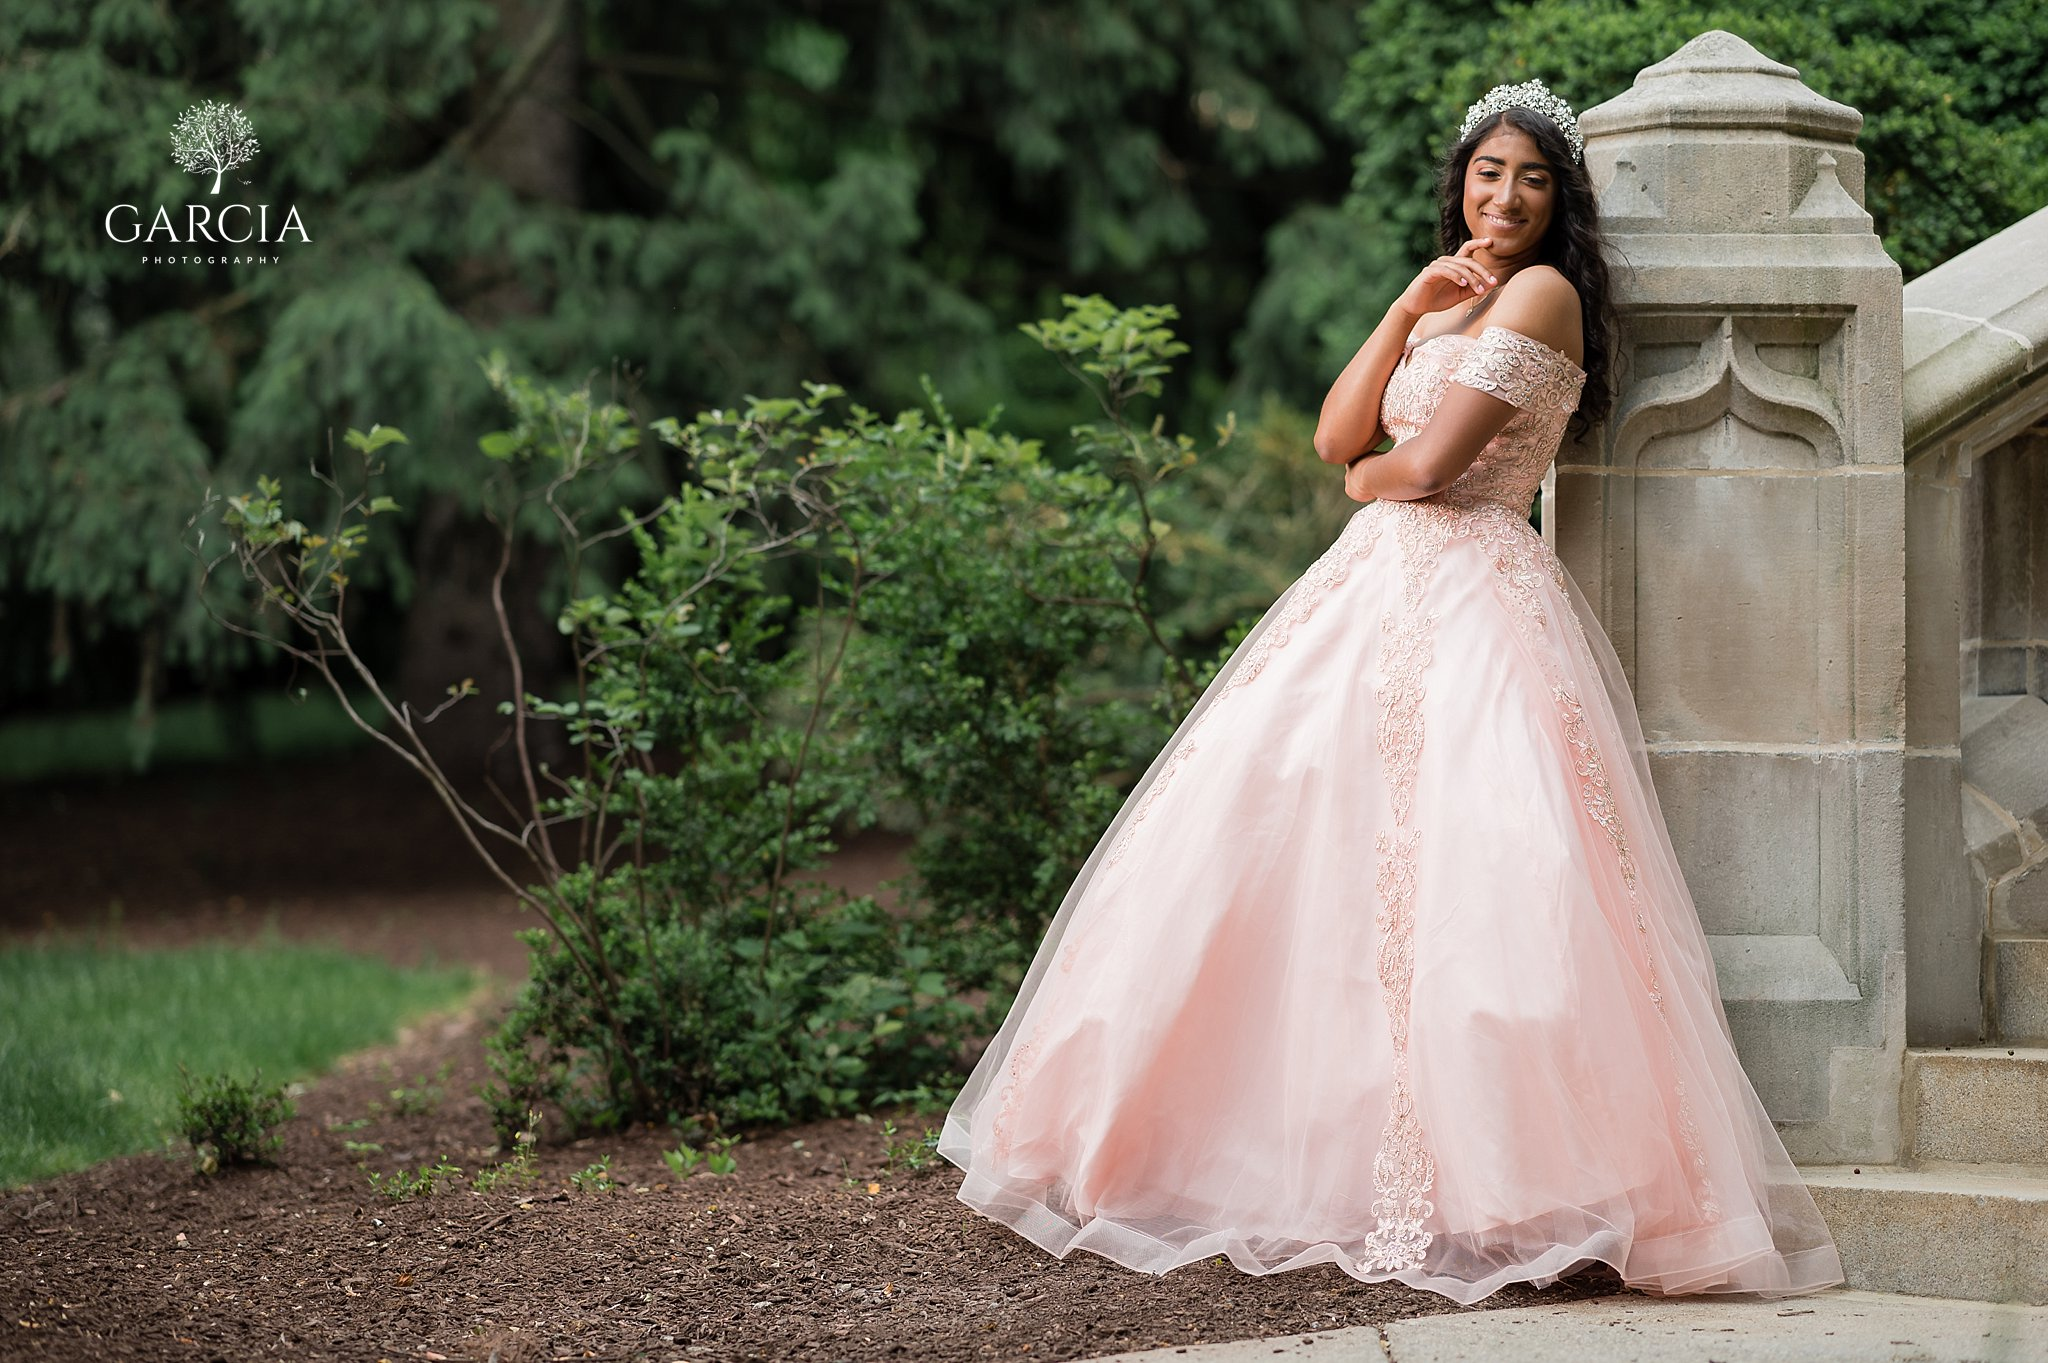 Emily-Quince-Session-Garcia-Photography-7846.jpg